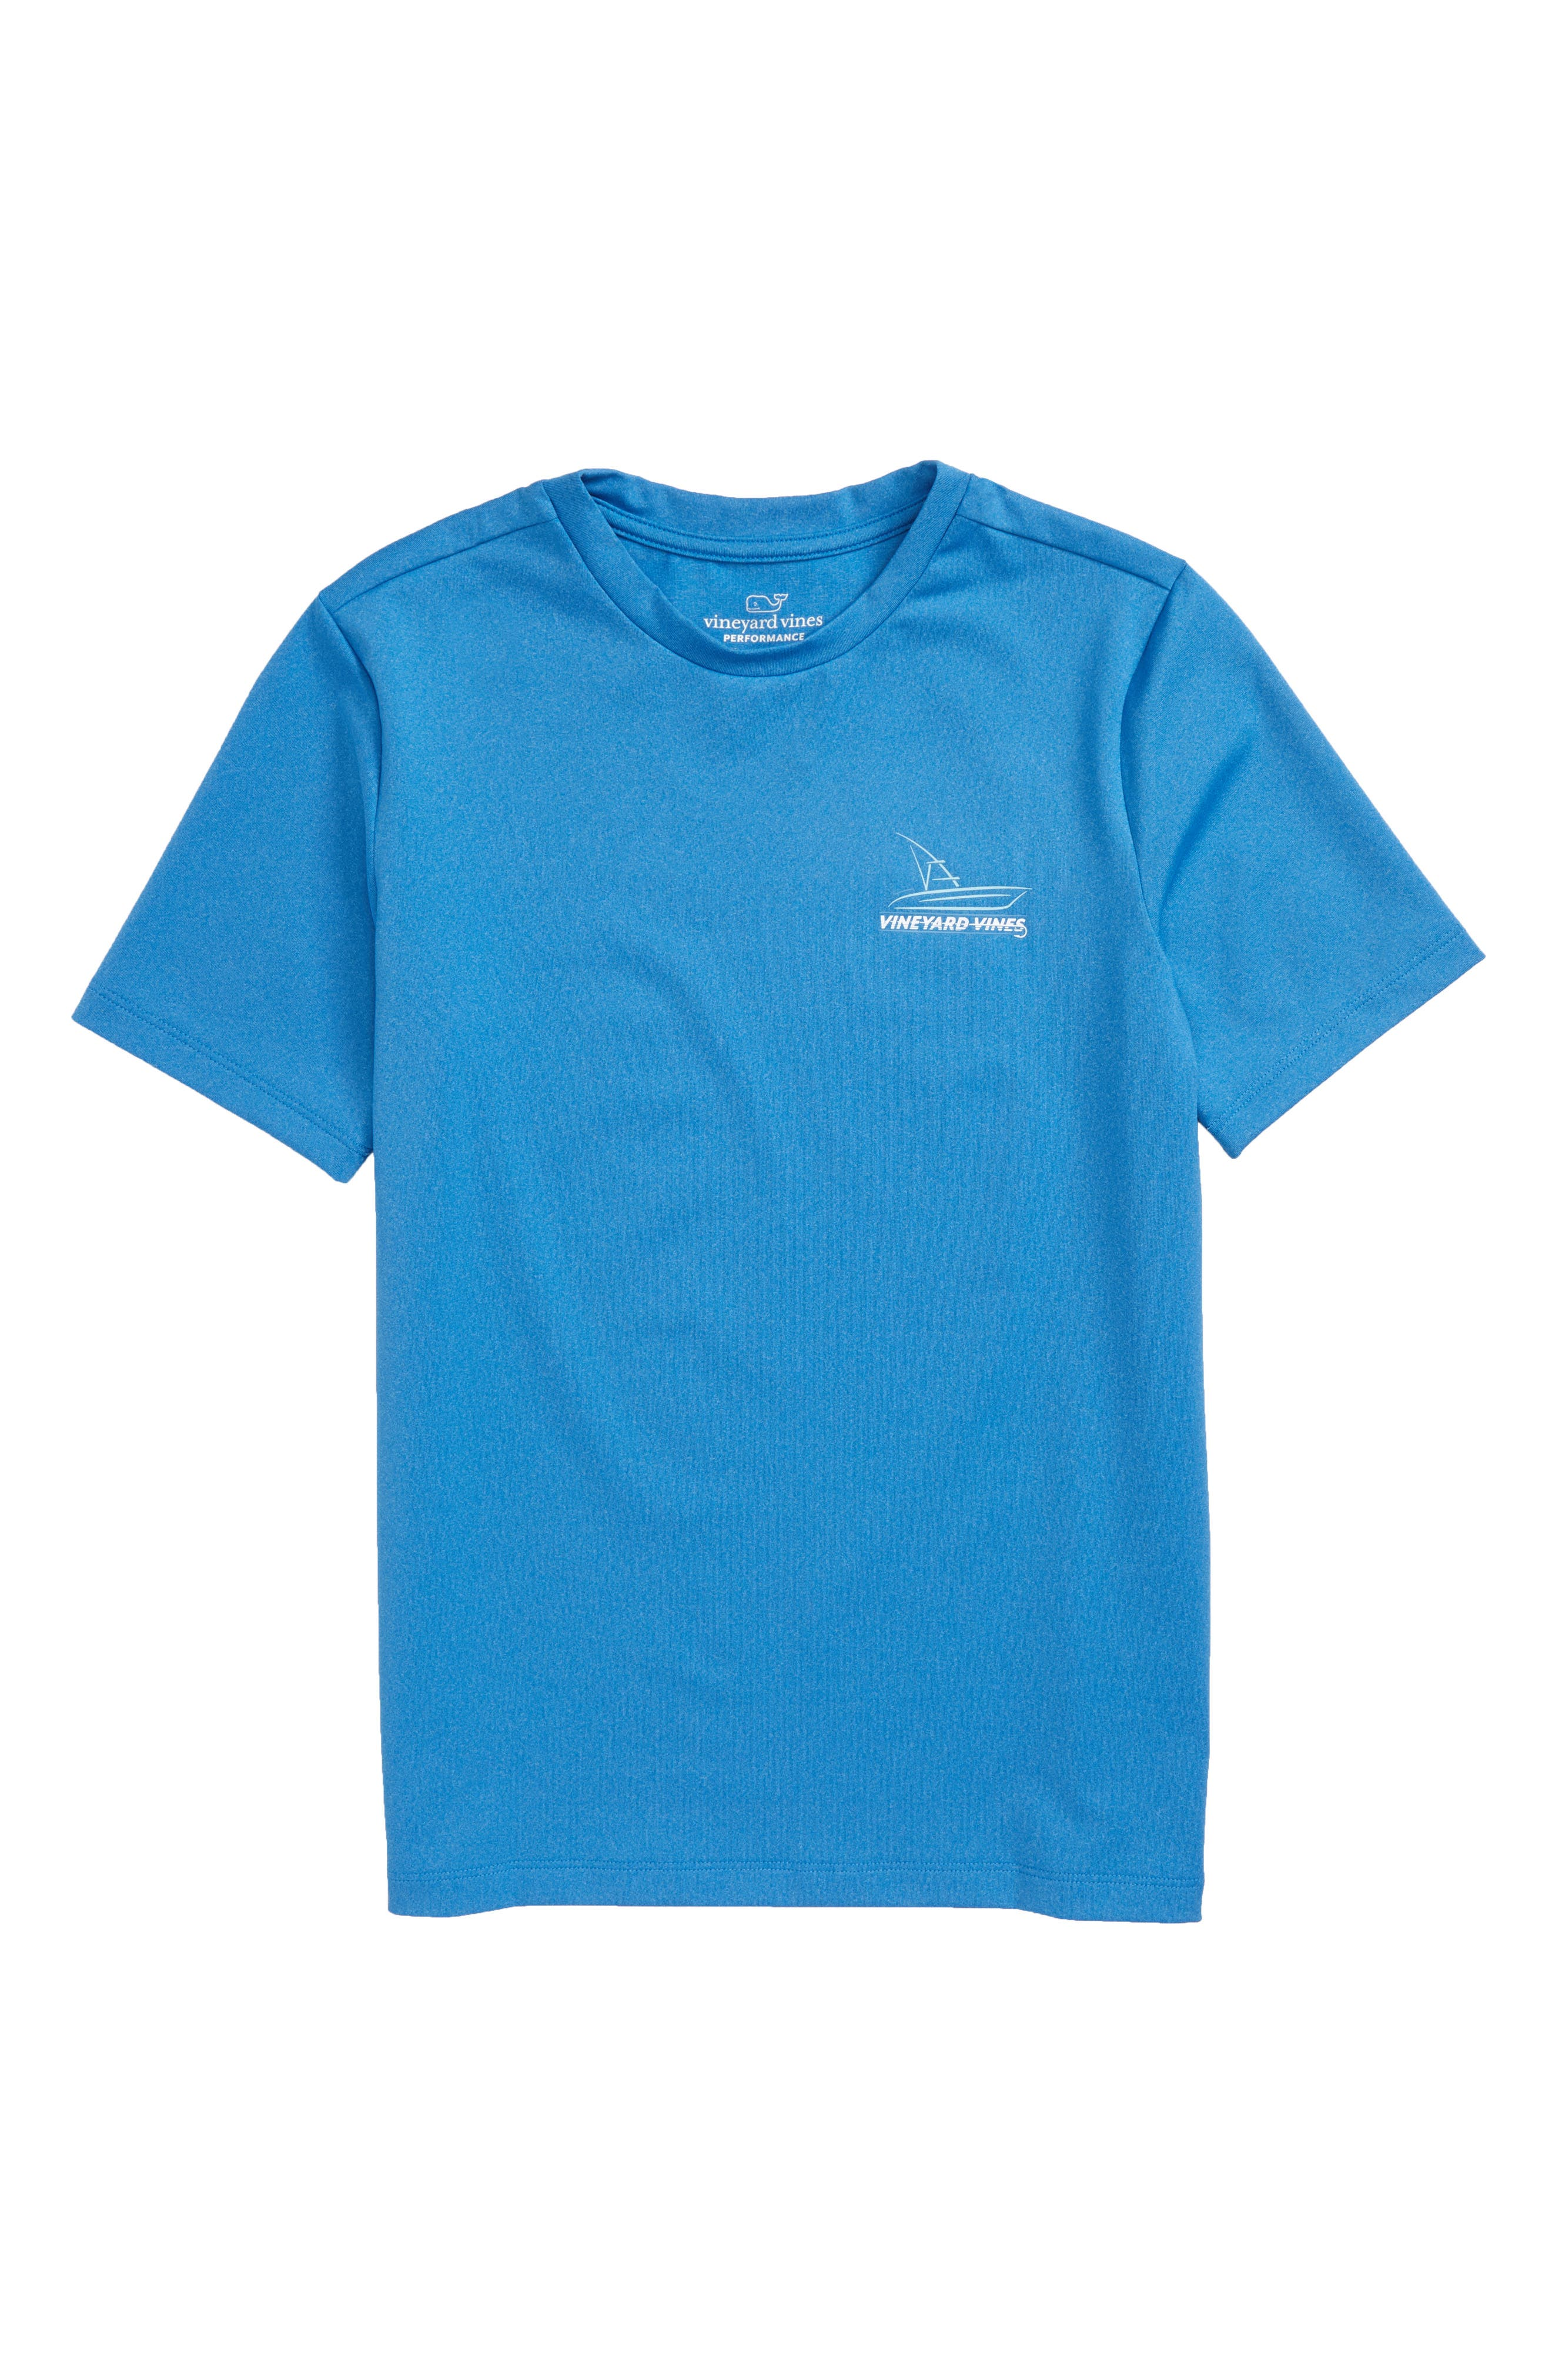 vineyard vines Sportfisher T-Shirt (Toddler Boys & Little Boys)